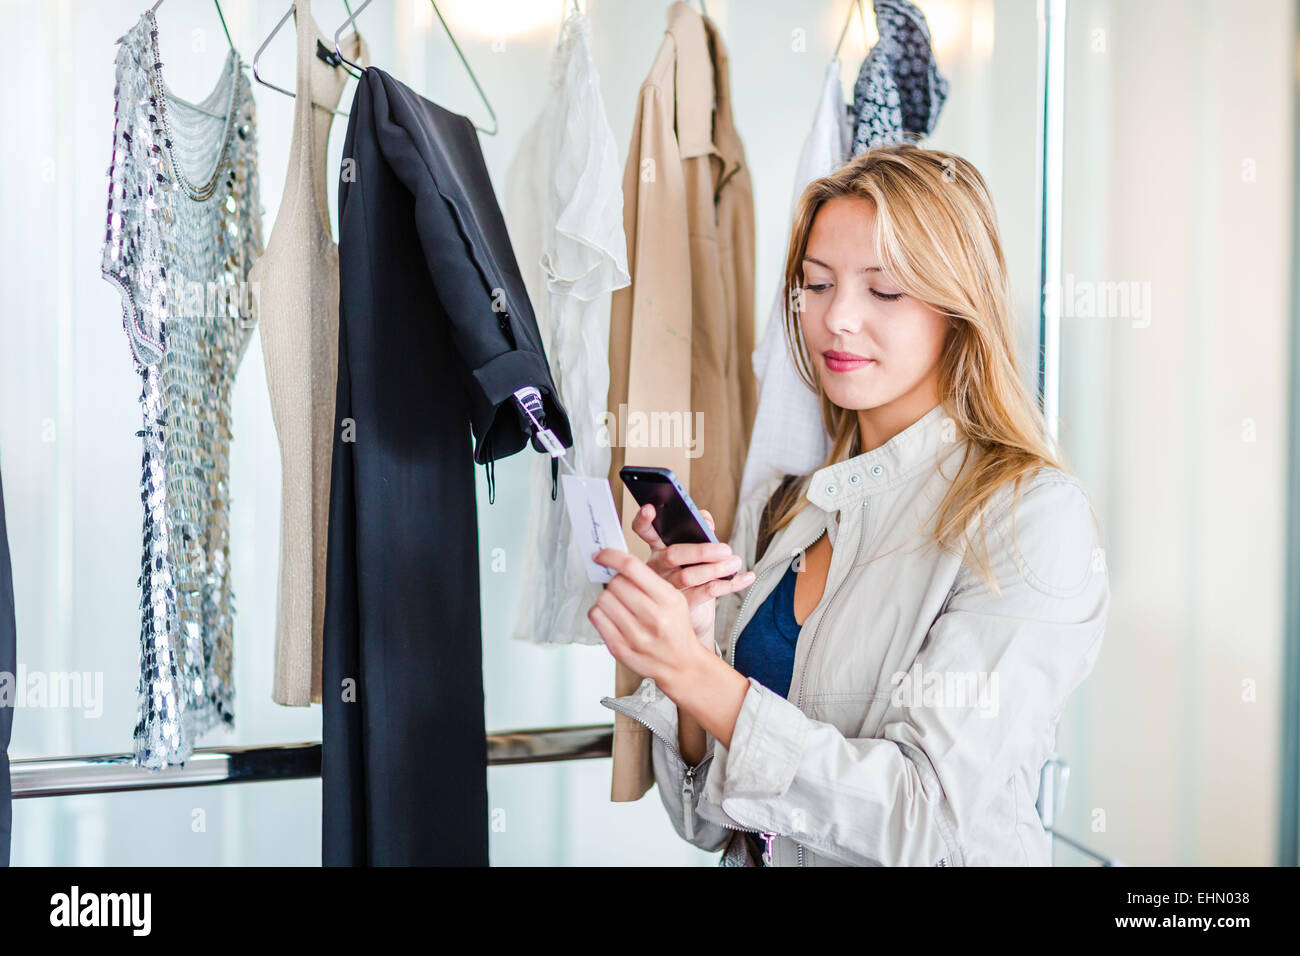 Woman using a smartphone in cloth shop. - Stock Image